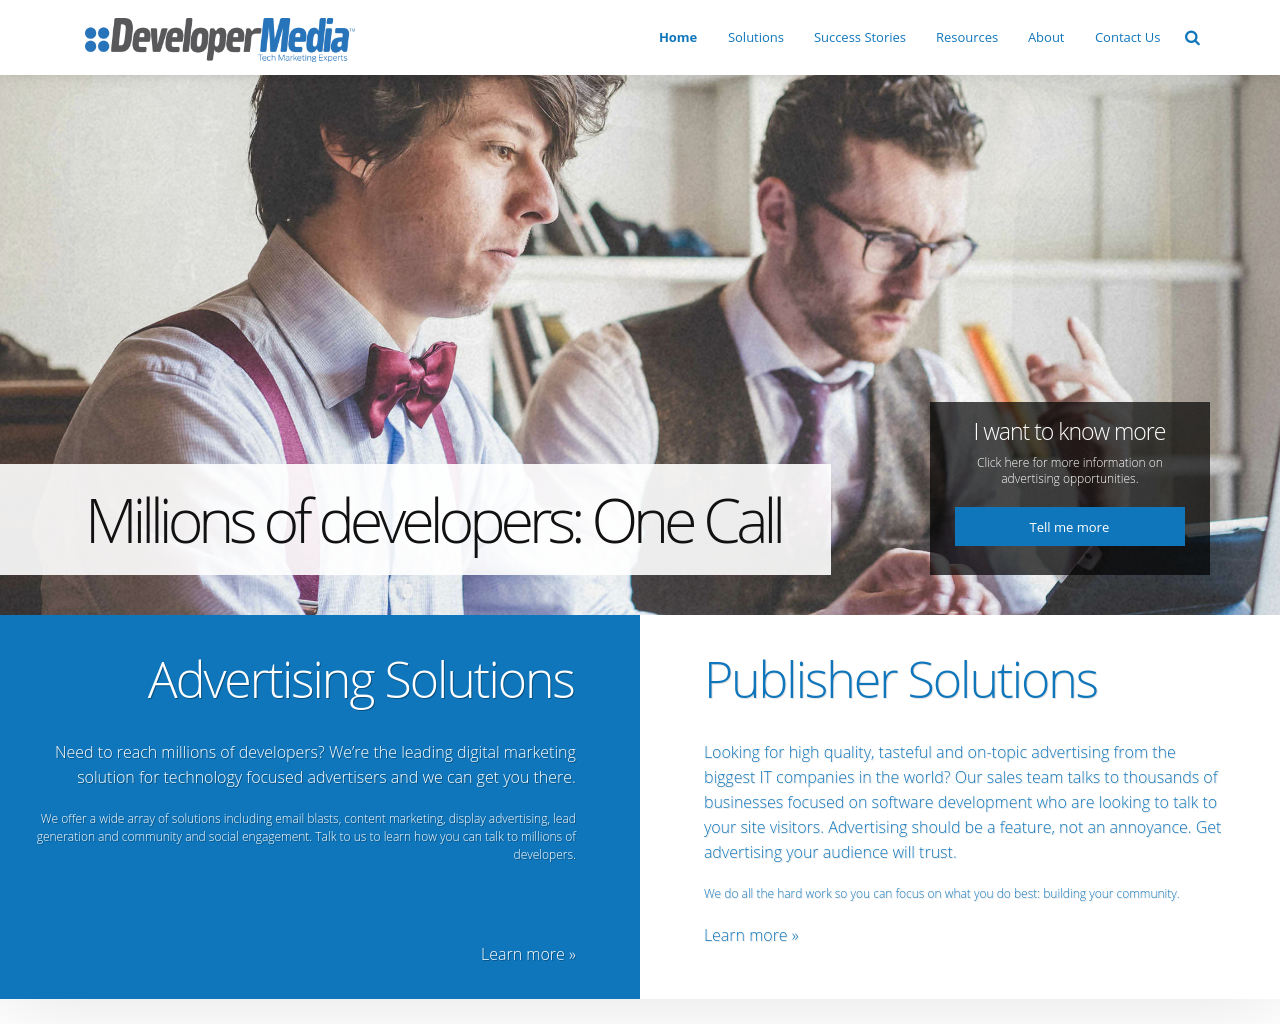 Developer-Media-/-Lake-Quincy-Media-Advertising-Reviews-Pricing